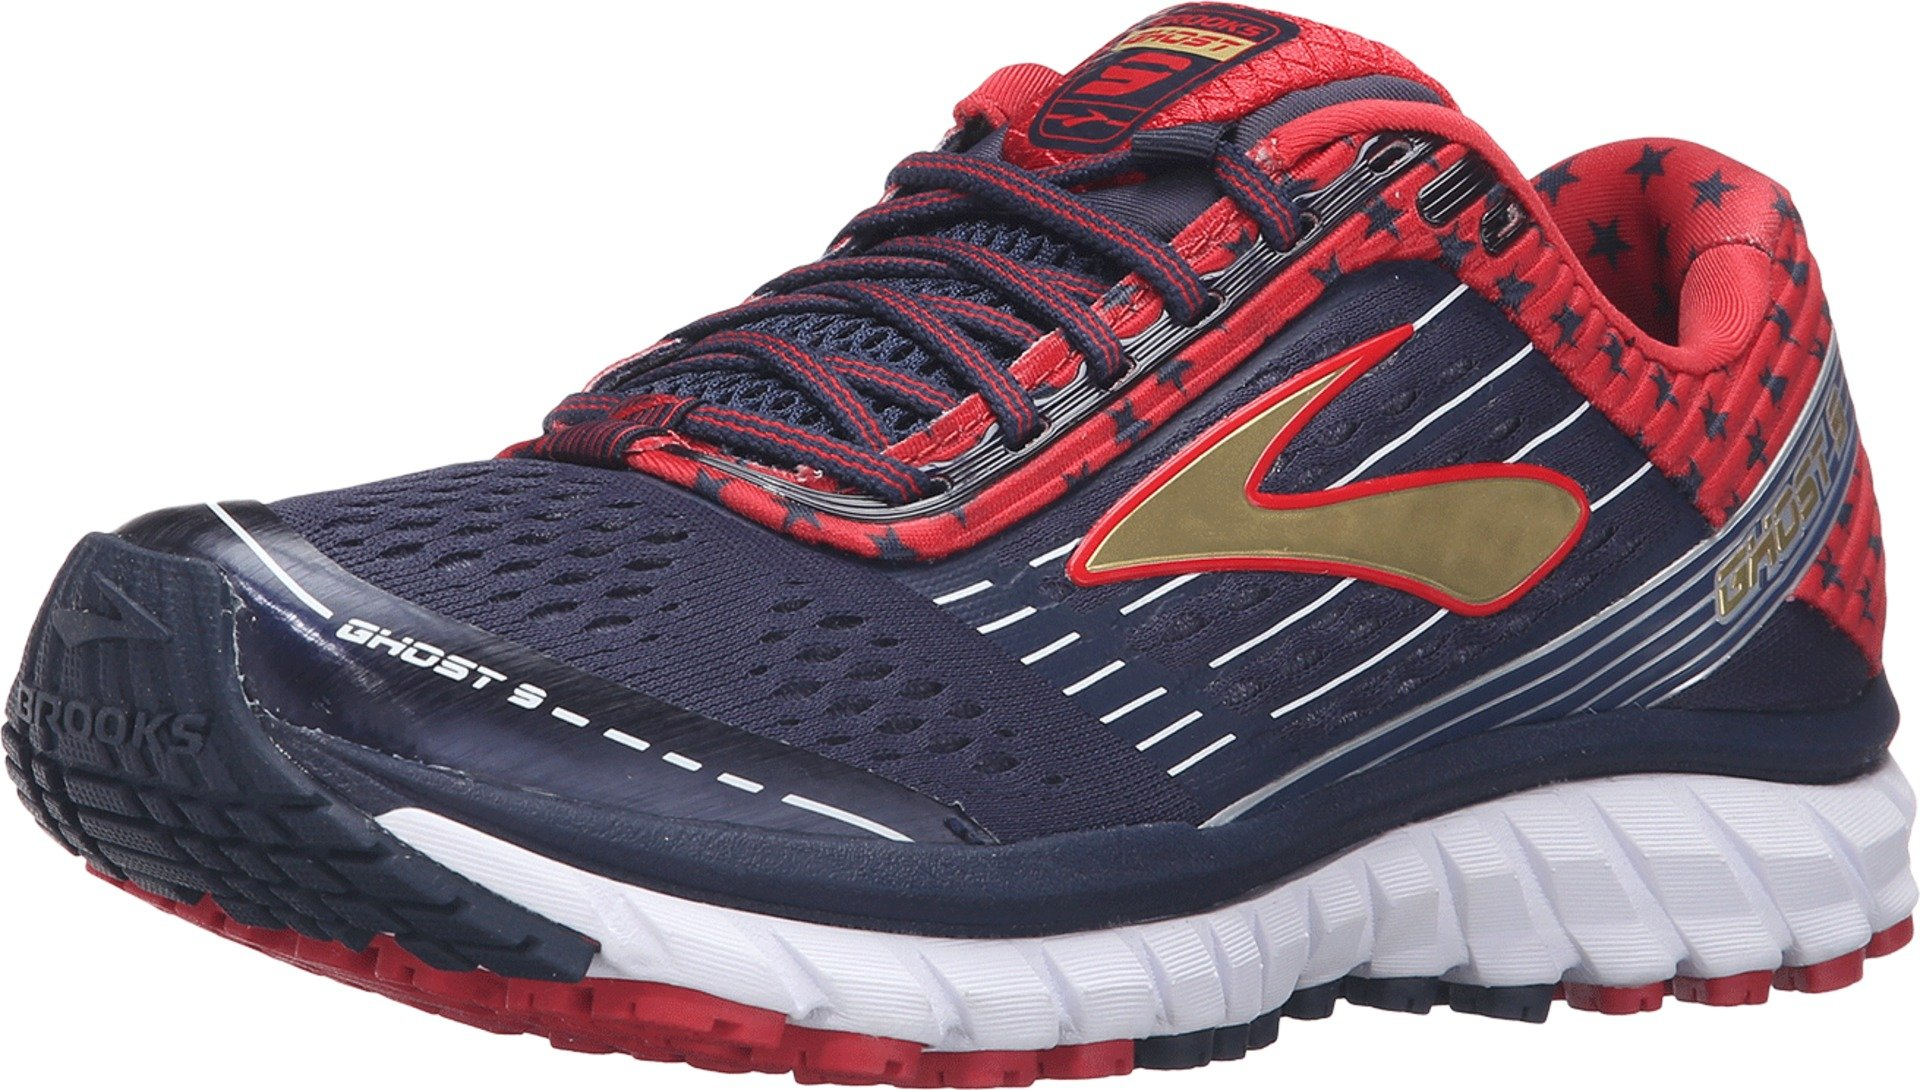 Brooks Women's Ghost 9 Peacoat Navy/True Red/Gold Running shoes - 9.5 B(M) US